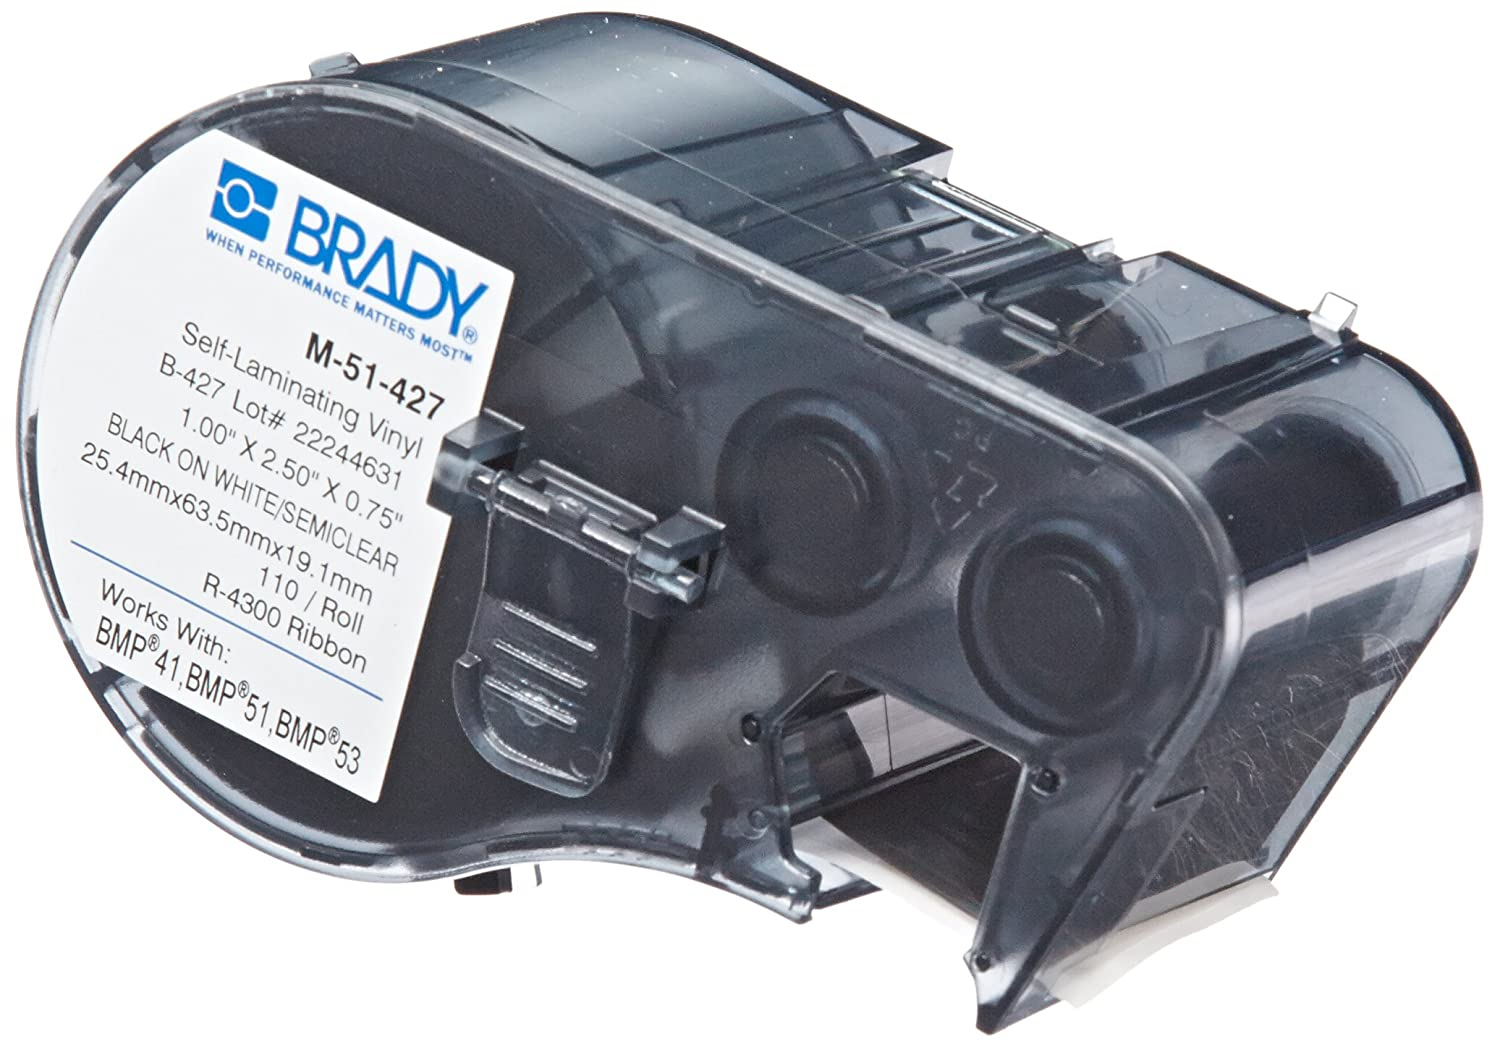 "B00FL01UEE Brady Self-Laminating Vinyl Label Tape (M-51-427) - Black on White, Semi Clear Tape - Compatible with BMP41, BMP51, BMP53 Label Printers - 2.5"" Height.75"" Width 81LgzmWnuvL"